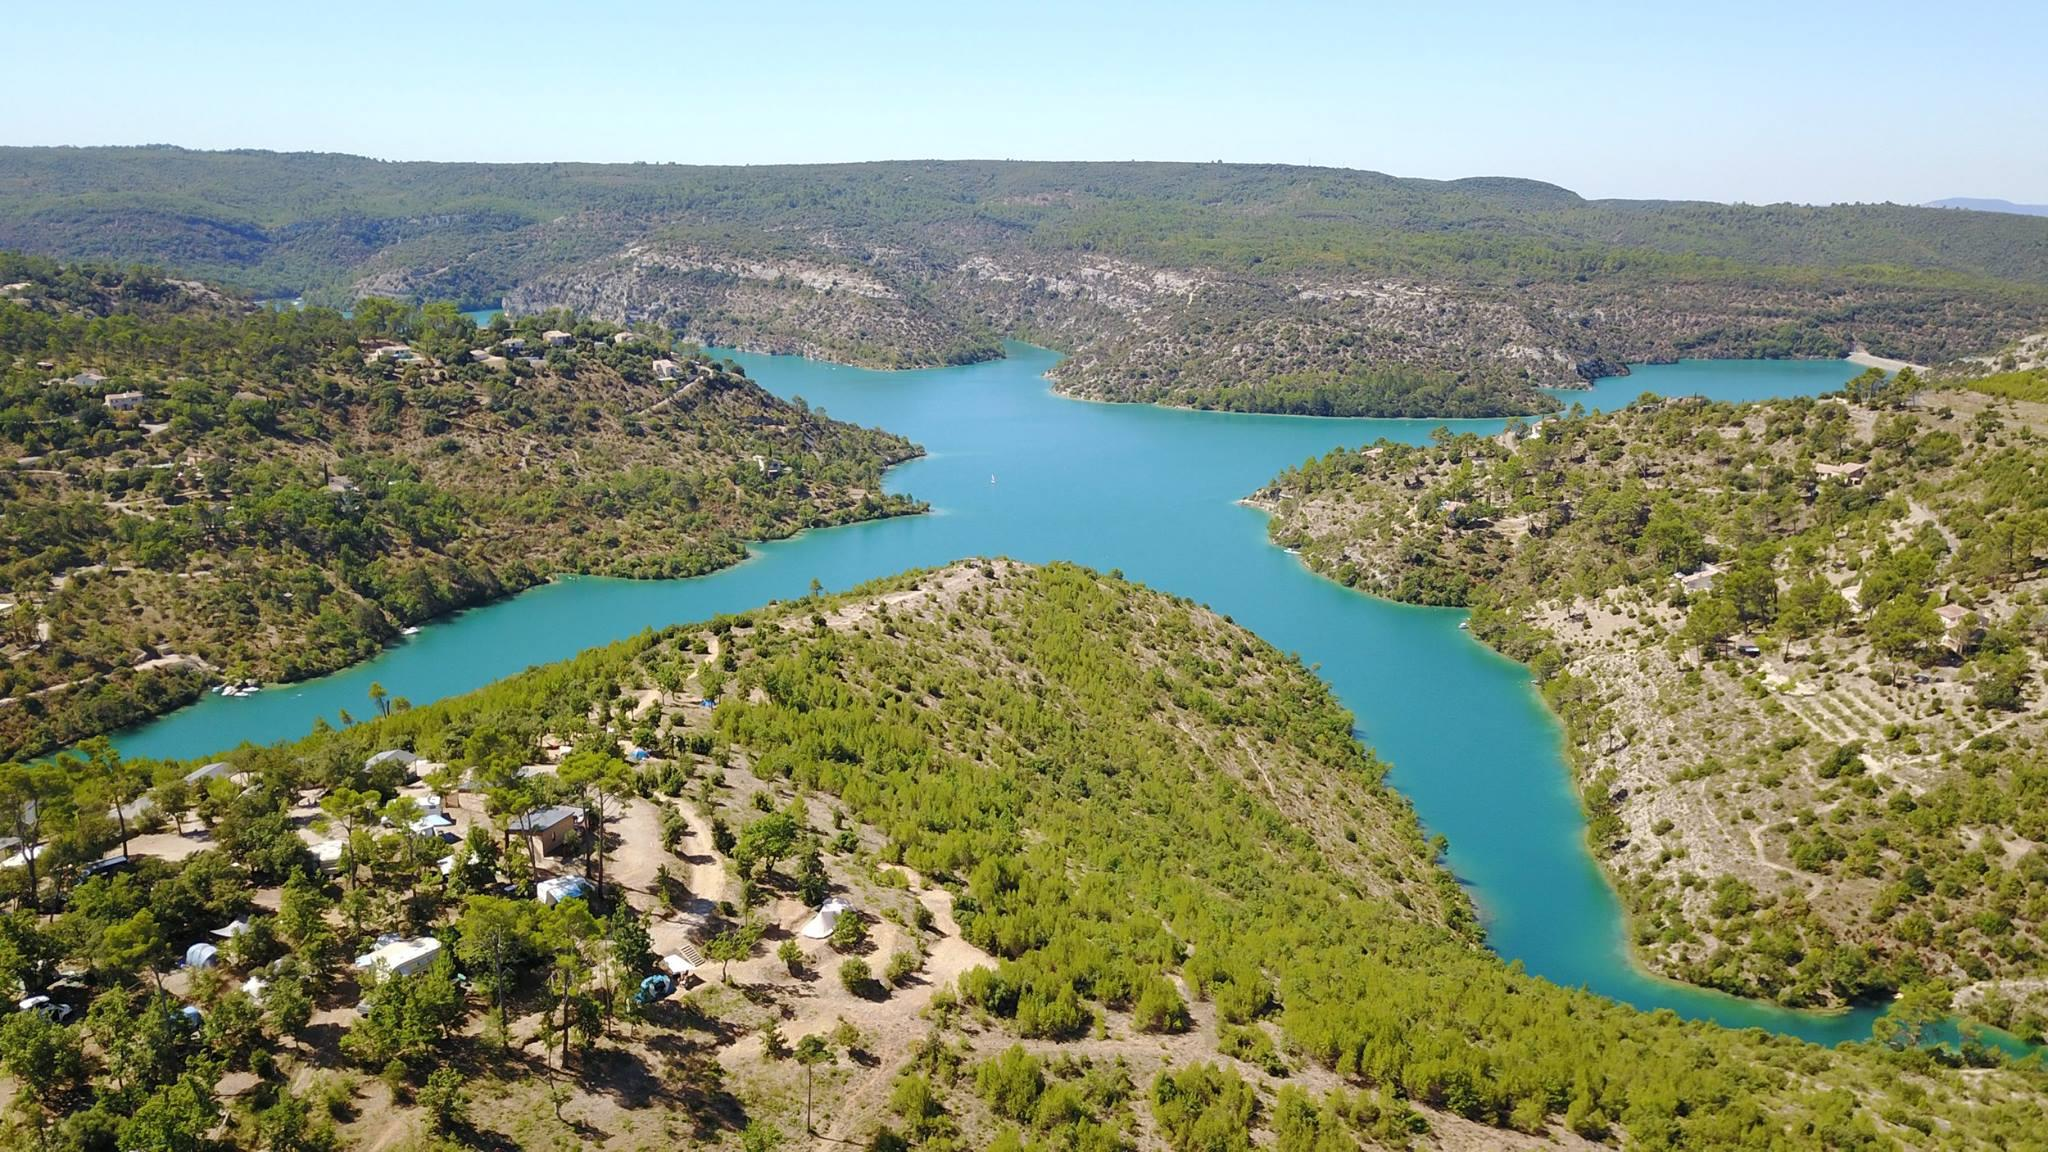 Establishment Camping Naturiste Verdon Provence - Esparron De Verdon